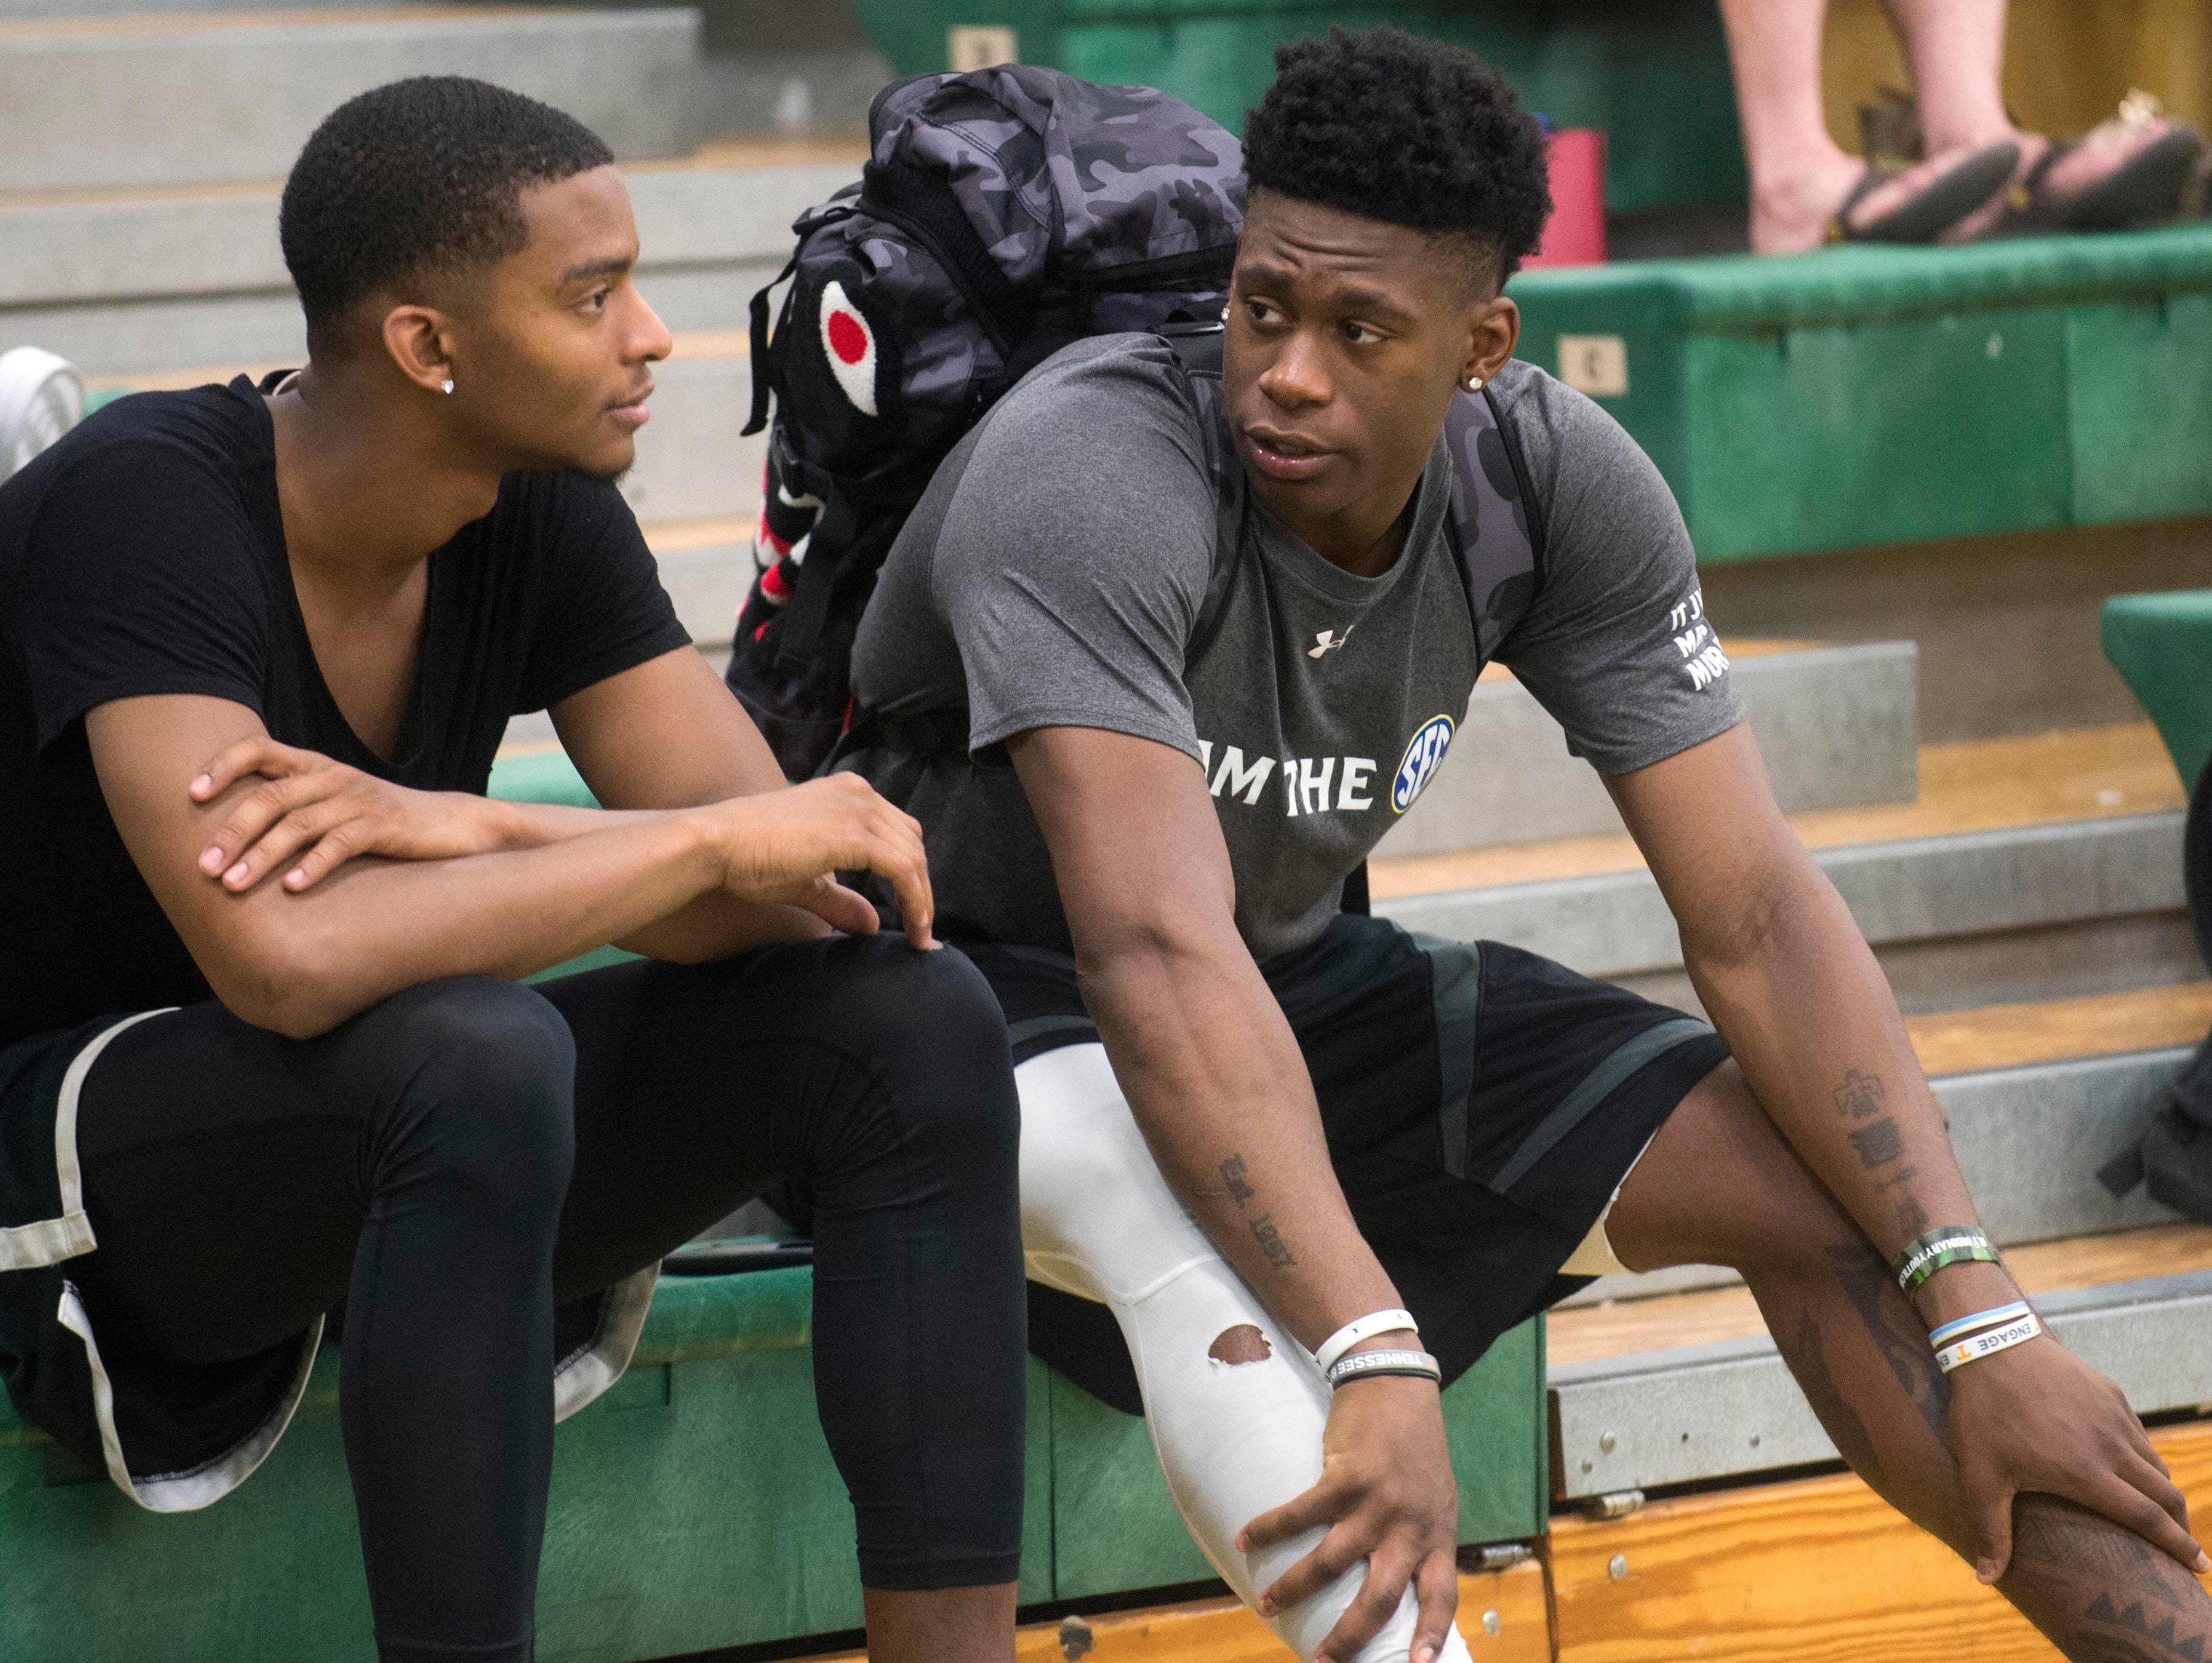 Tennessee's Admiral Schofield, right, talks with teammate Jalen Johnson while watching after their game during the Pilot Rocky Top League tournament at Knoxville Catholic High School on Monday, June 26, 2017.